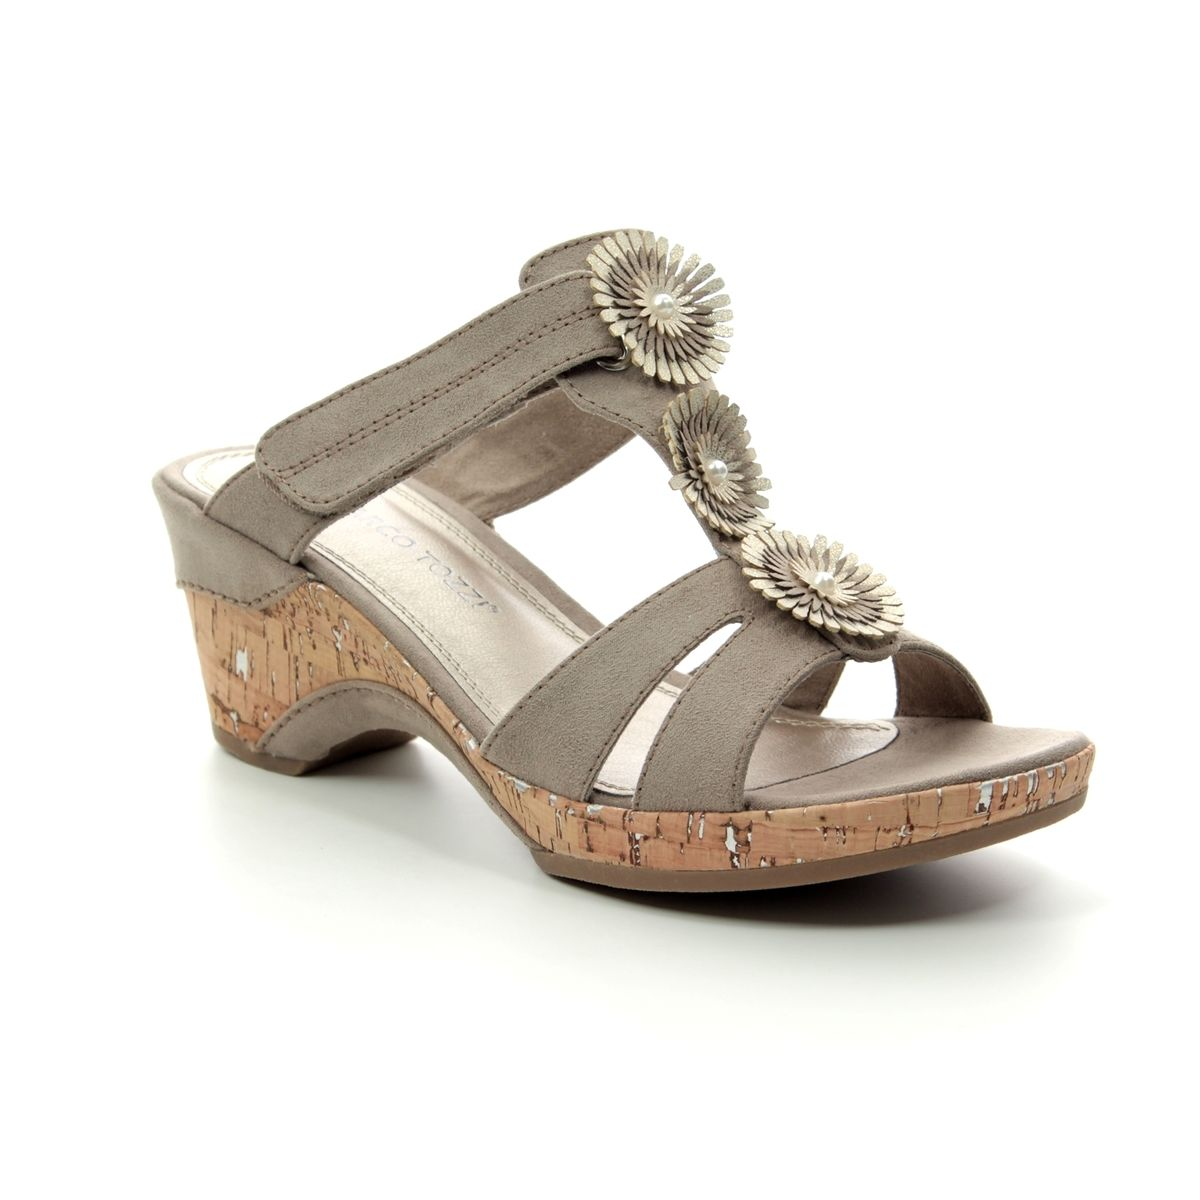 a4432af8e52 Marco Tozzi Wedge Sandals - Taupe - 27213 22 344 LOZIM 91